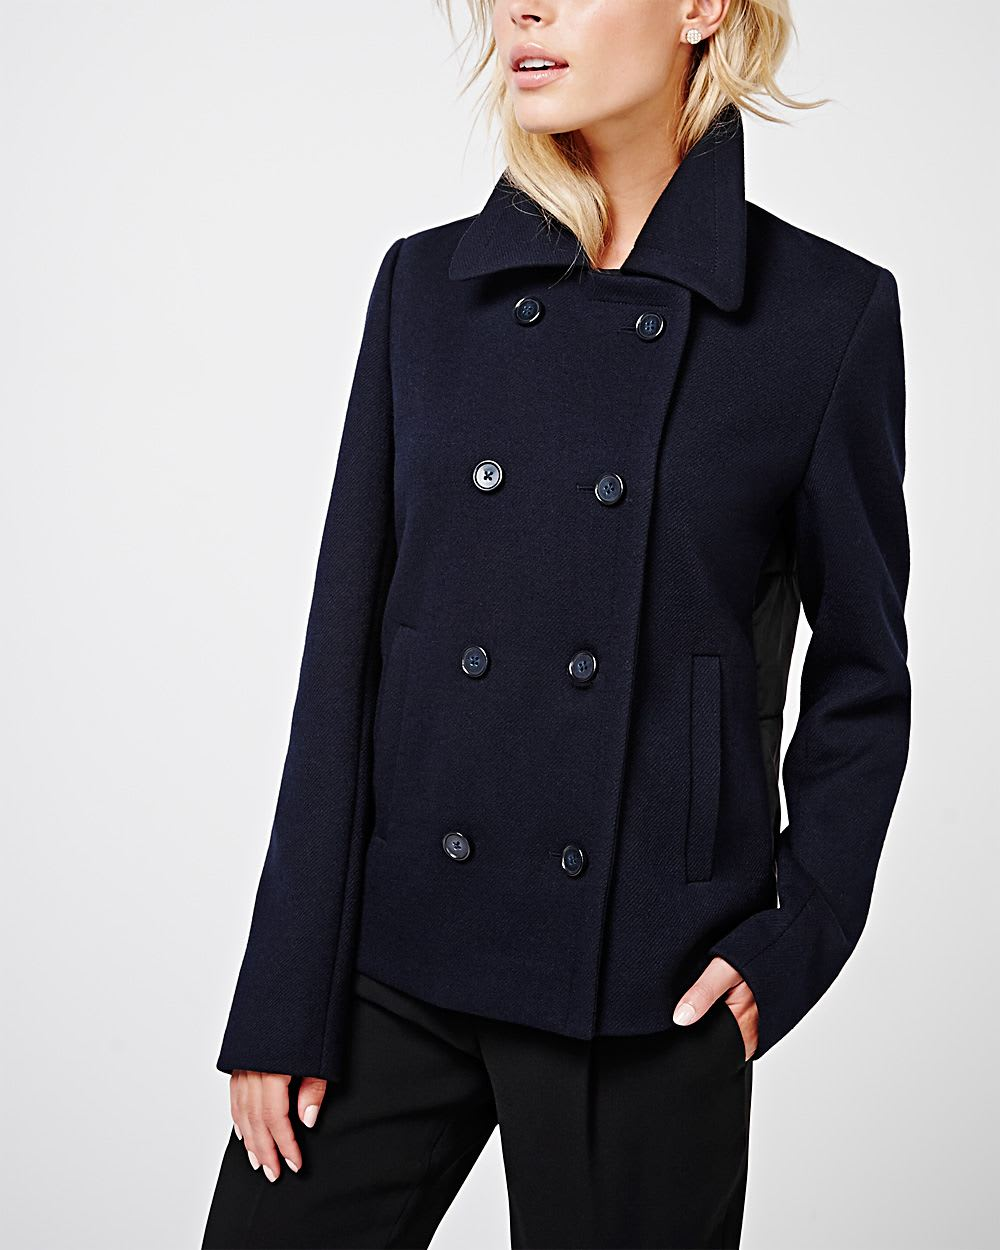 Shop online for women's wool & wool blend coats at gusajigadexe.cf Browse our selection of double-breasted coats, blazers, trenches and more. Free shipping and returns.